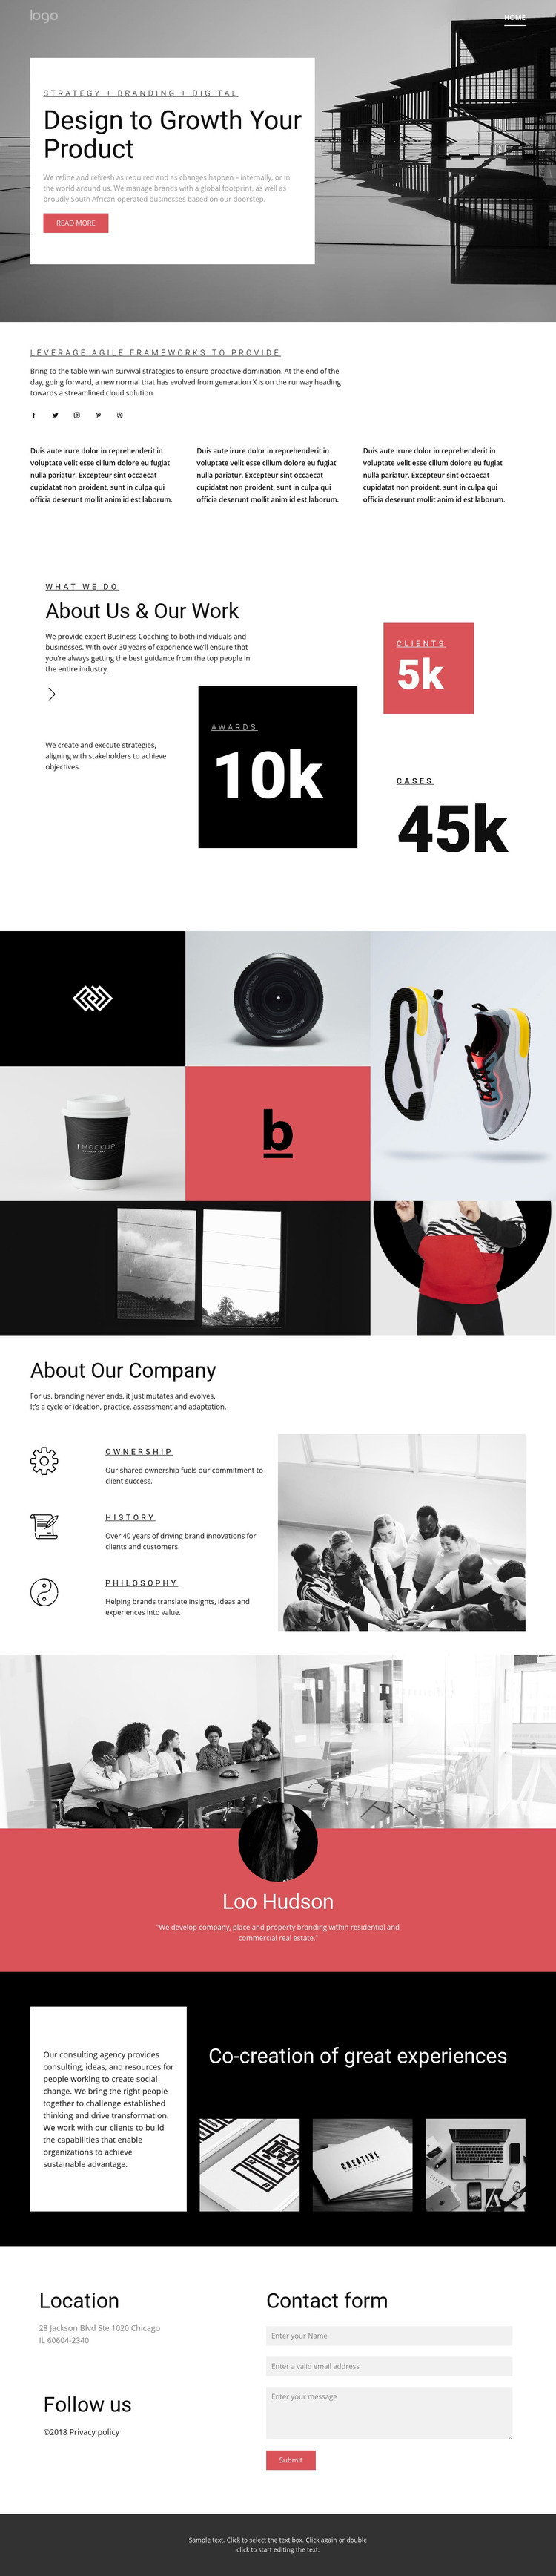 Business growth agency Homepage Design